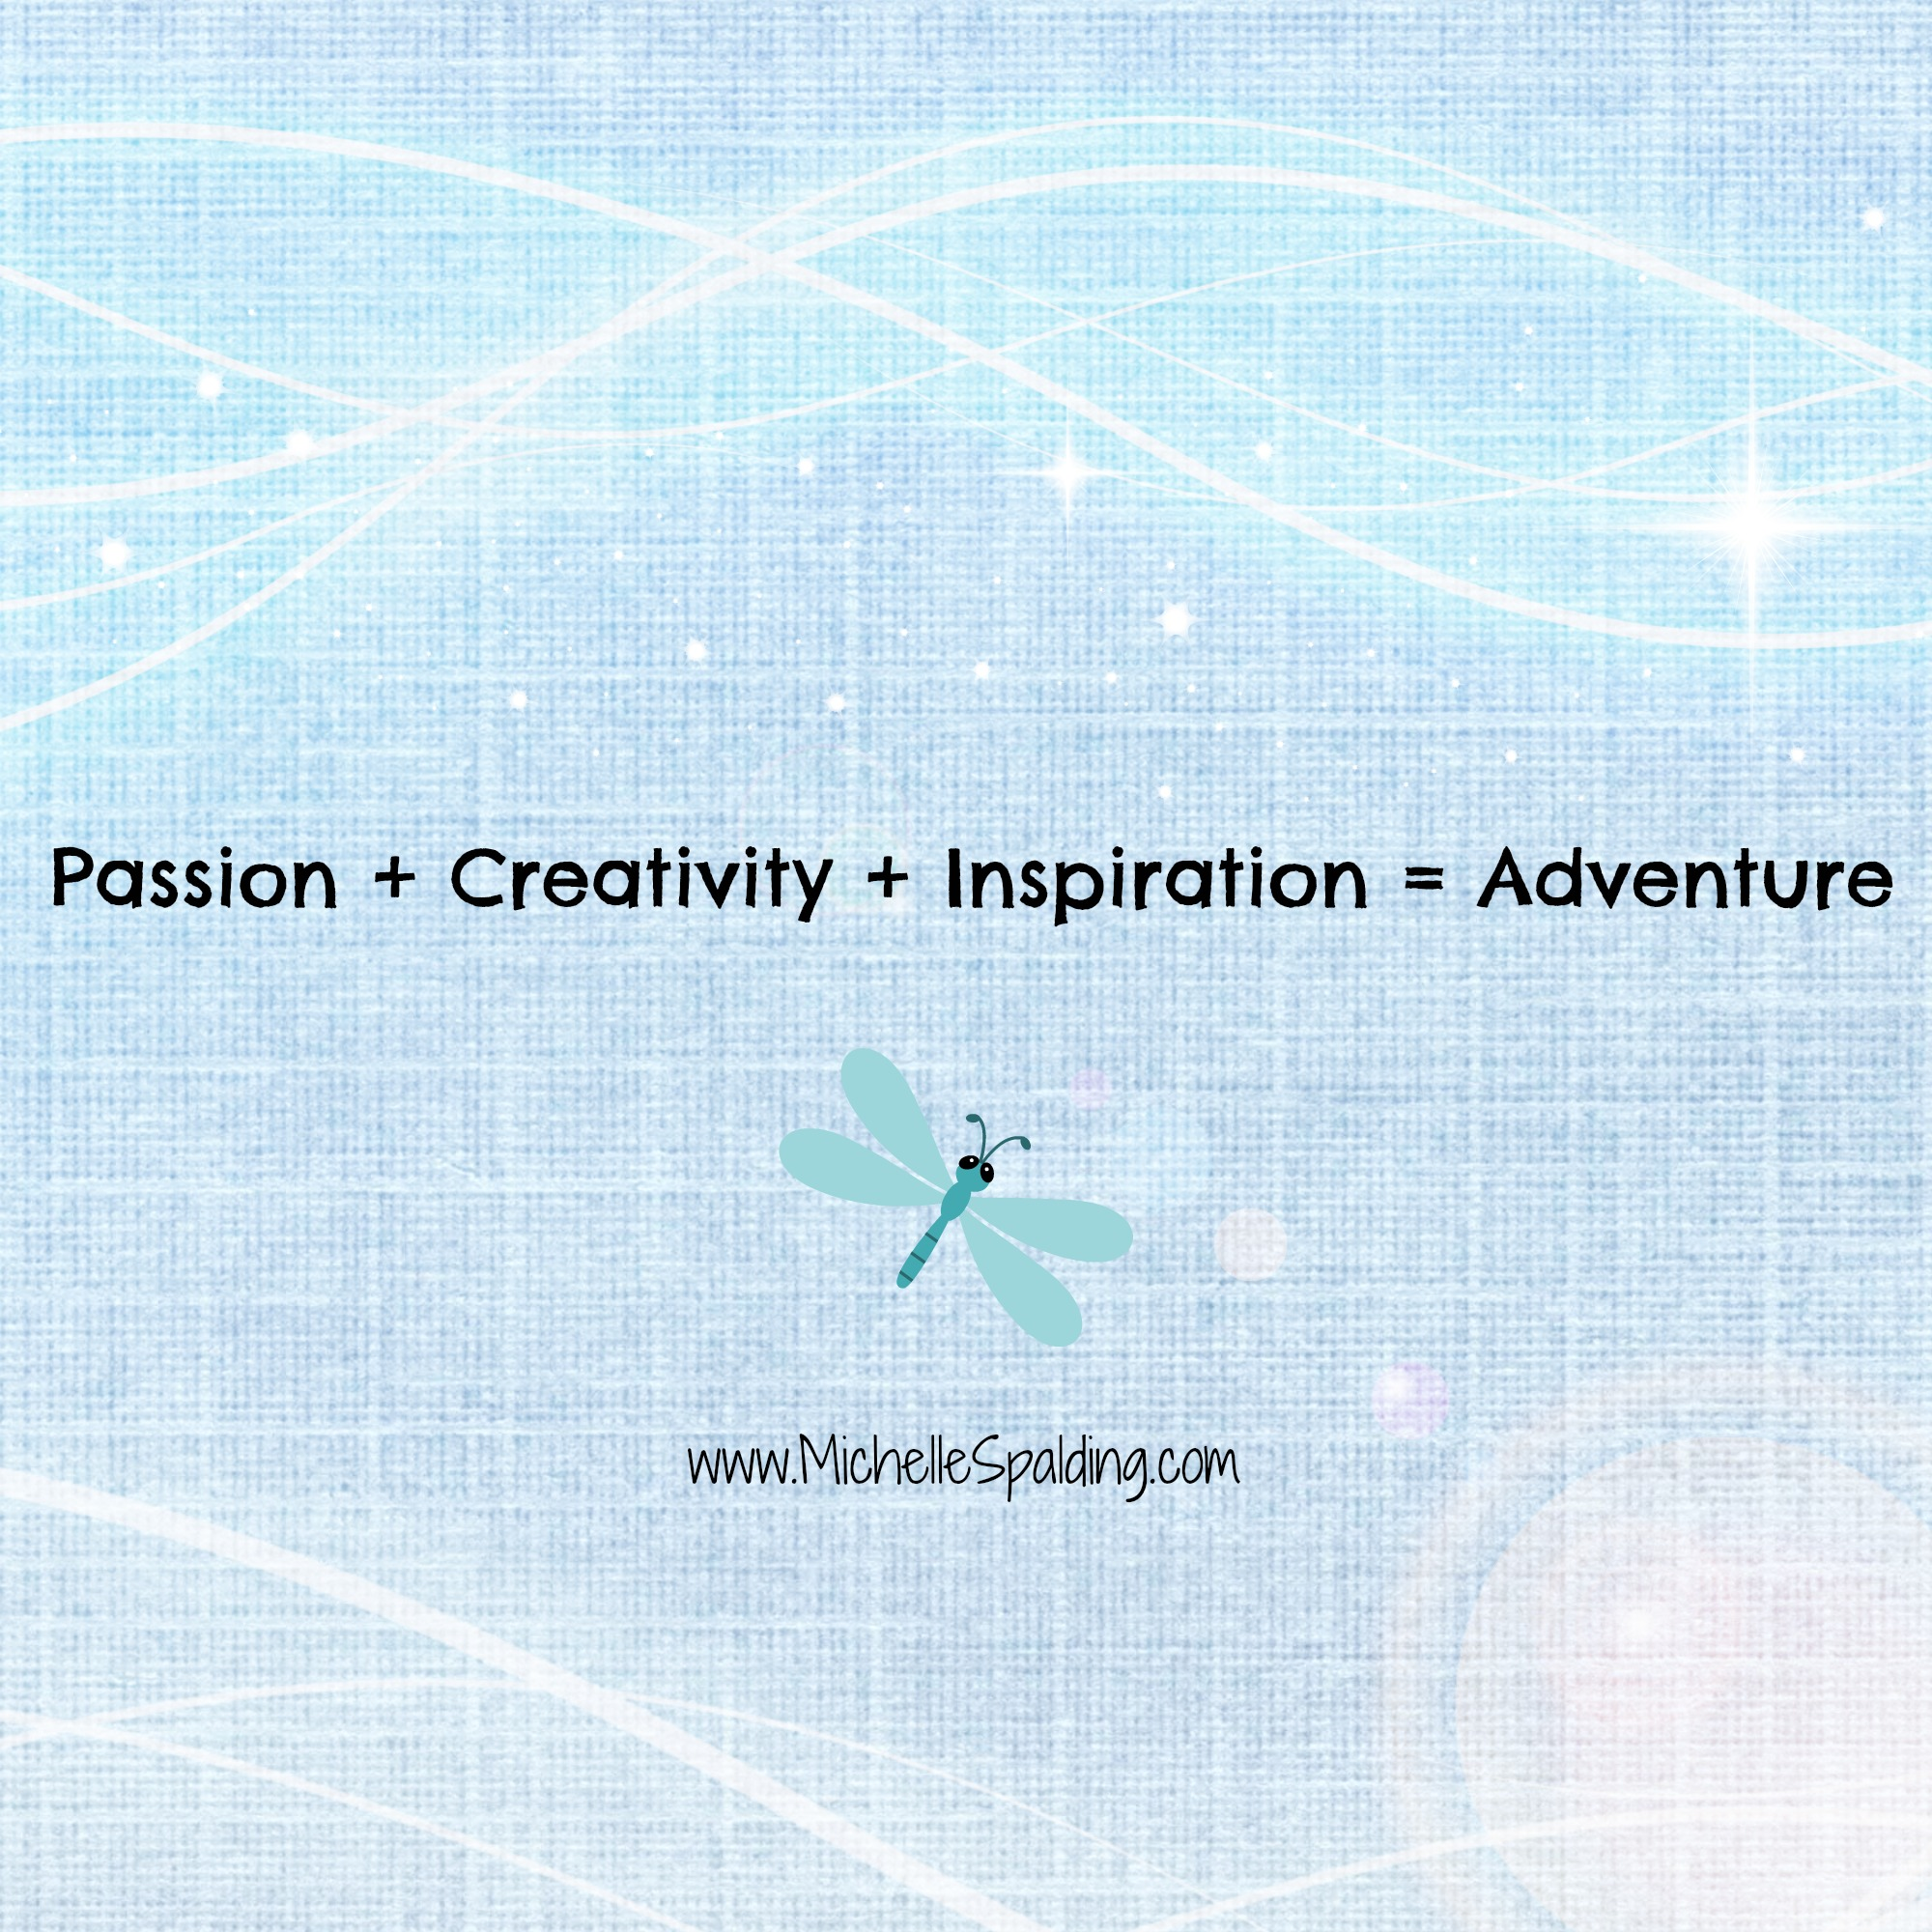 Passion + Creativity + Inspiration = Adventure